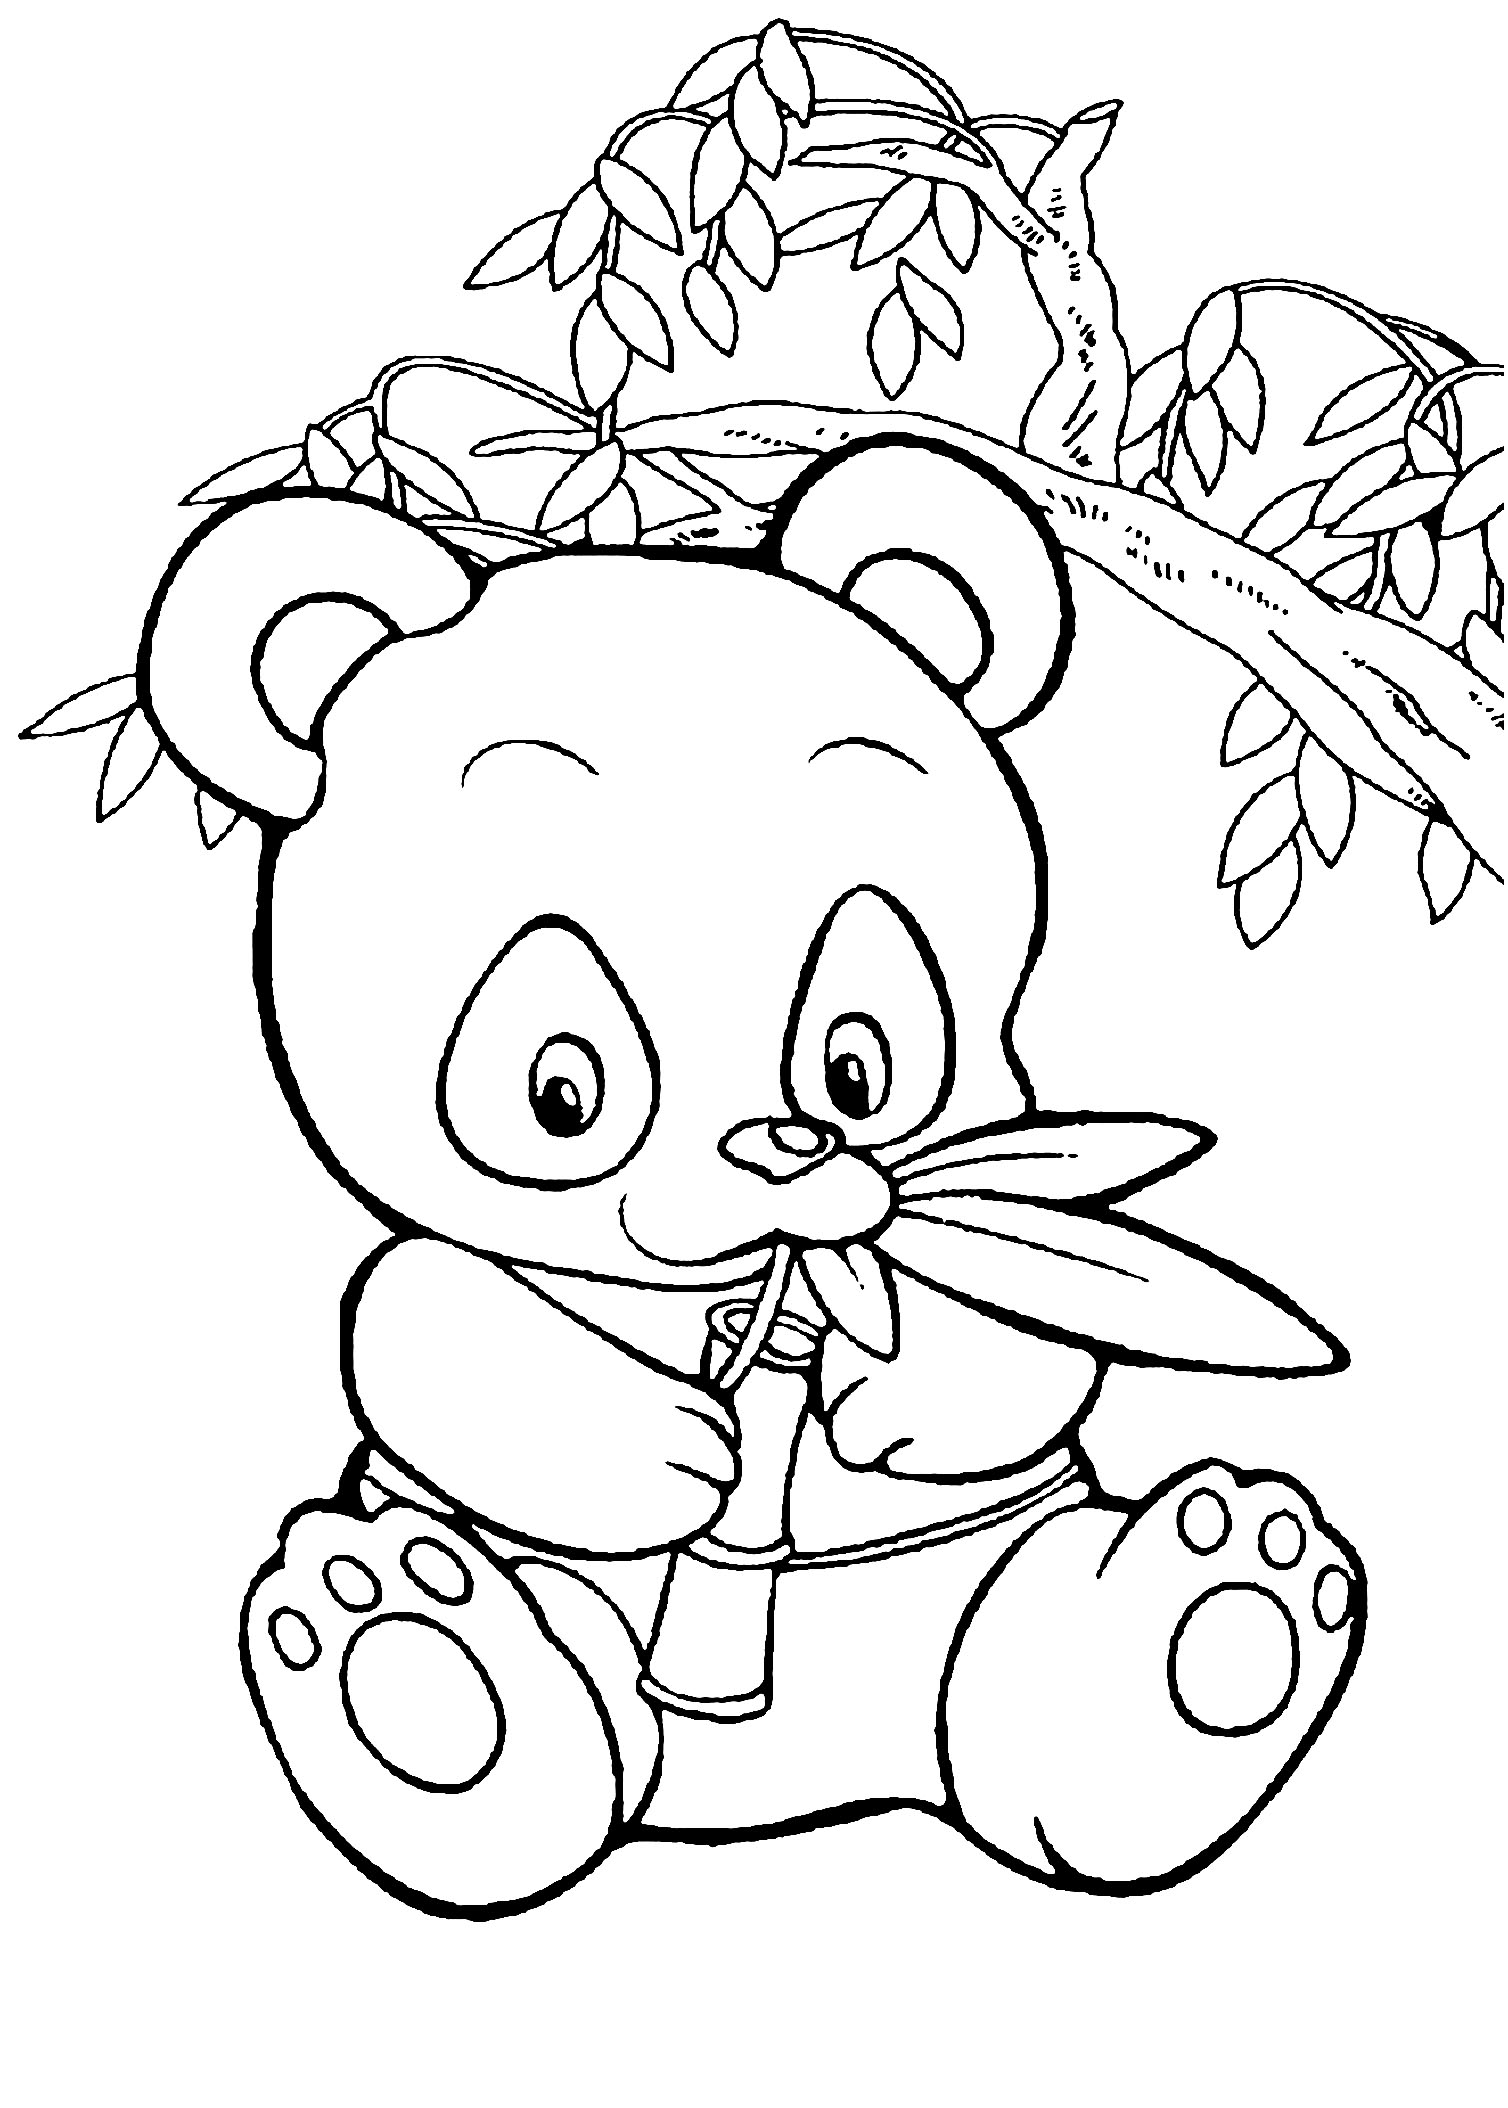 coloring pages panda panda coloring pages for adults coloring home pages panda coloring